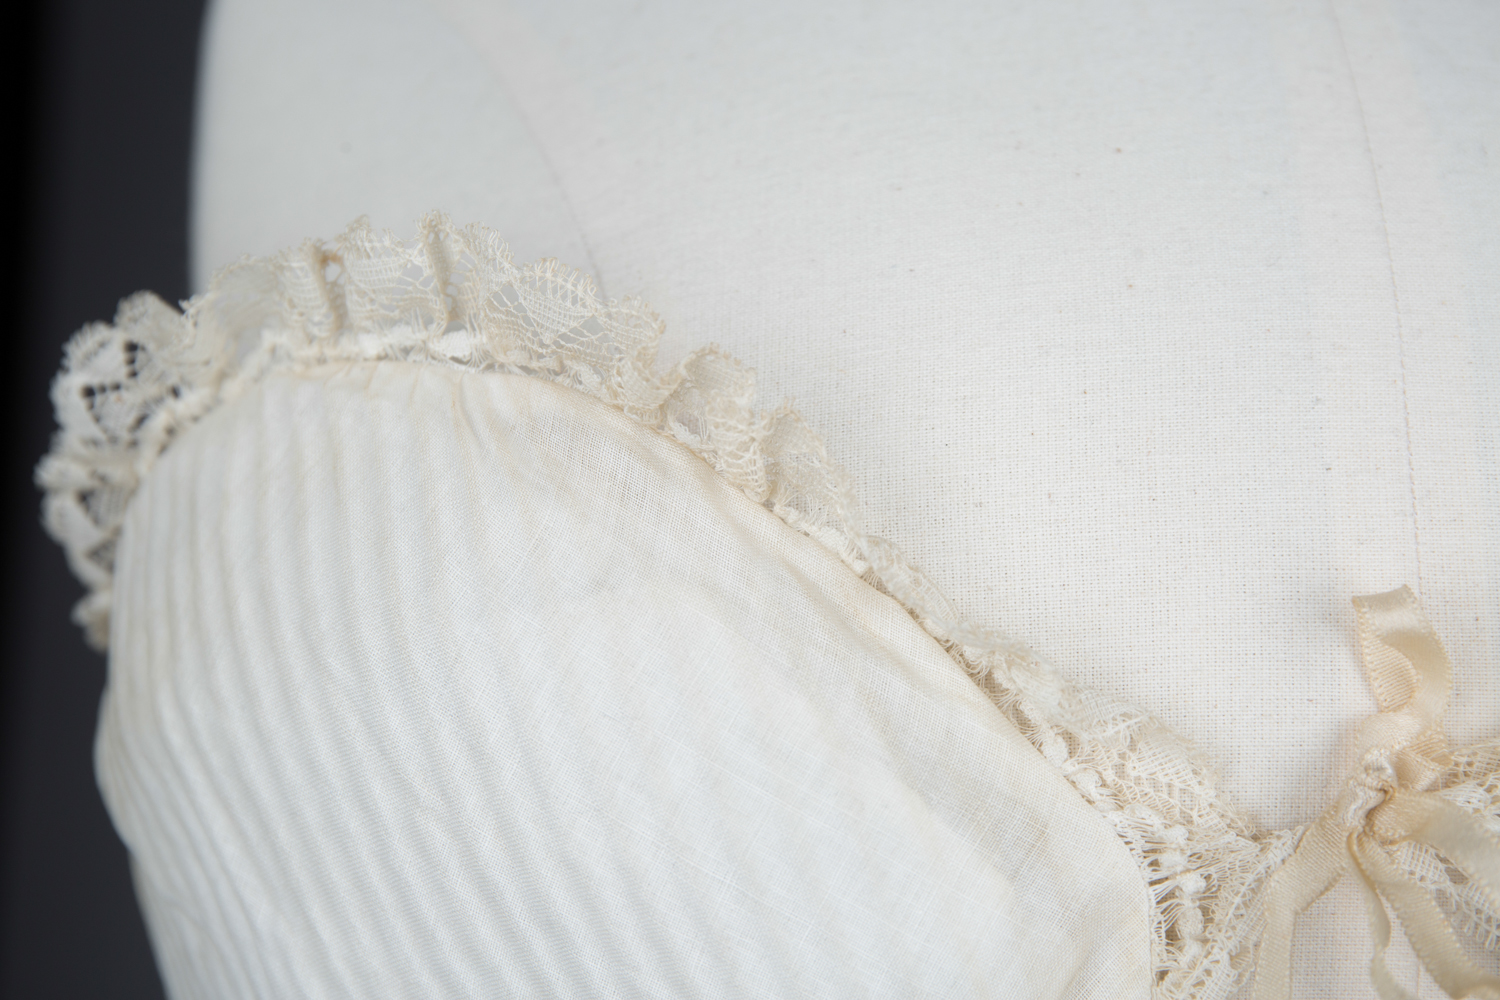 Cotton Padded Bust Improver With Lace Trim, c. 1880-1900s. The Underpinnings Museum. Photography by Tigz Rice.